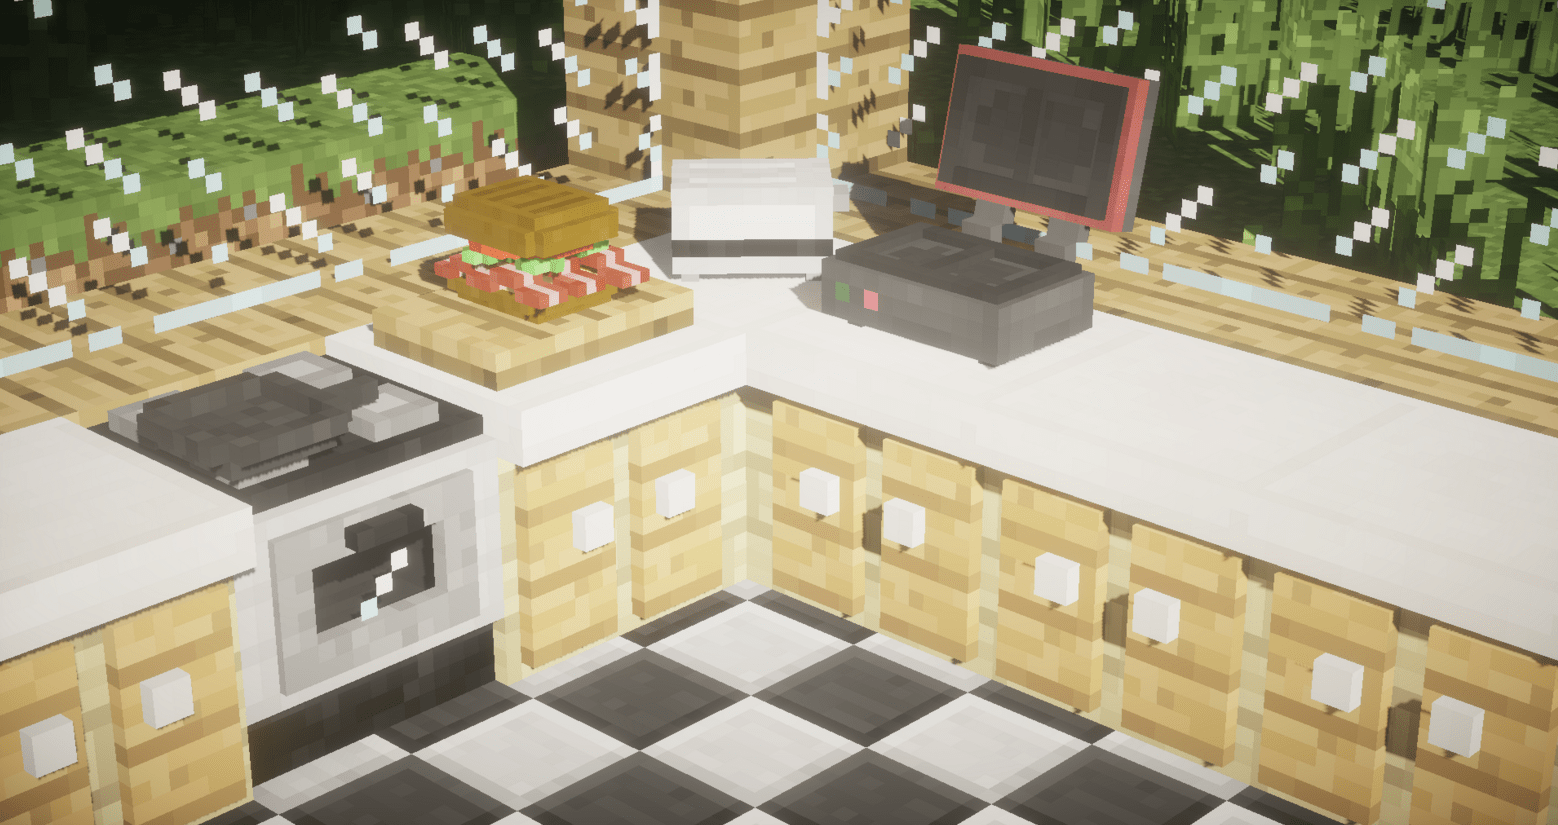 Minecraft Kitchen Mod 1.8 1 7 10 The Kitchen Mod Make Burgers And More Mod Installer